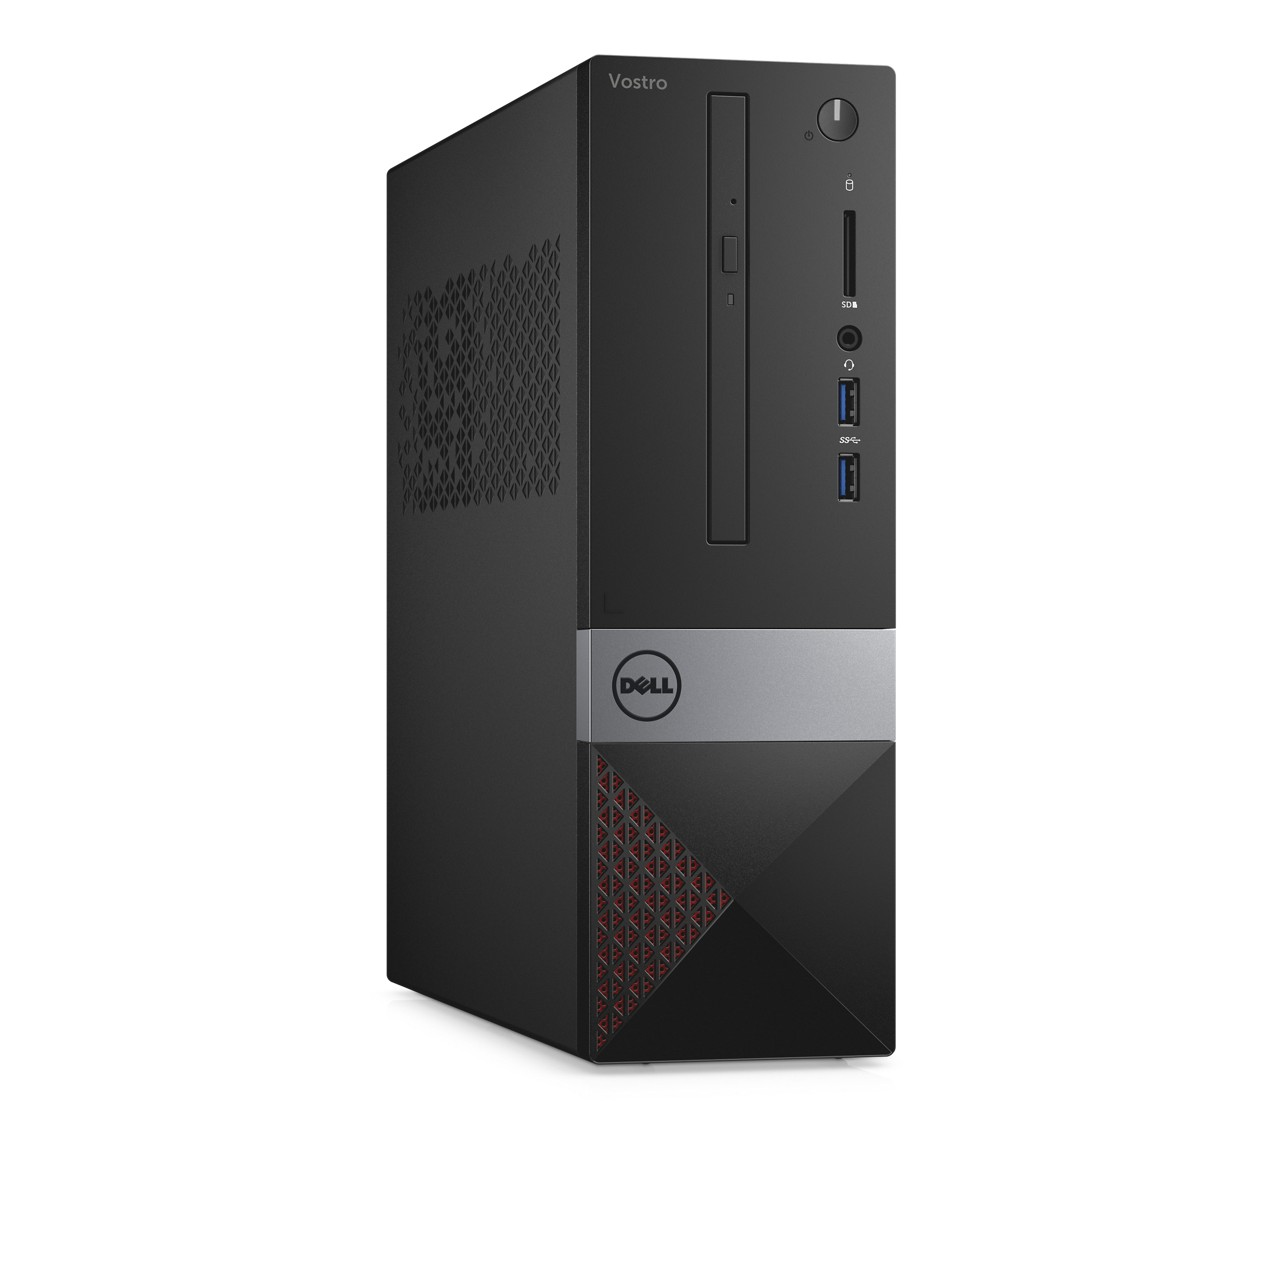 Dell PC Vostro 3268 SF i5-7400/4GB/1TB/VGA/HDMI/DVD-RW/WiFi+BT/W10P/3RNBD/Černý